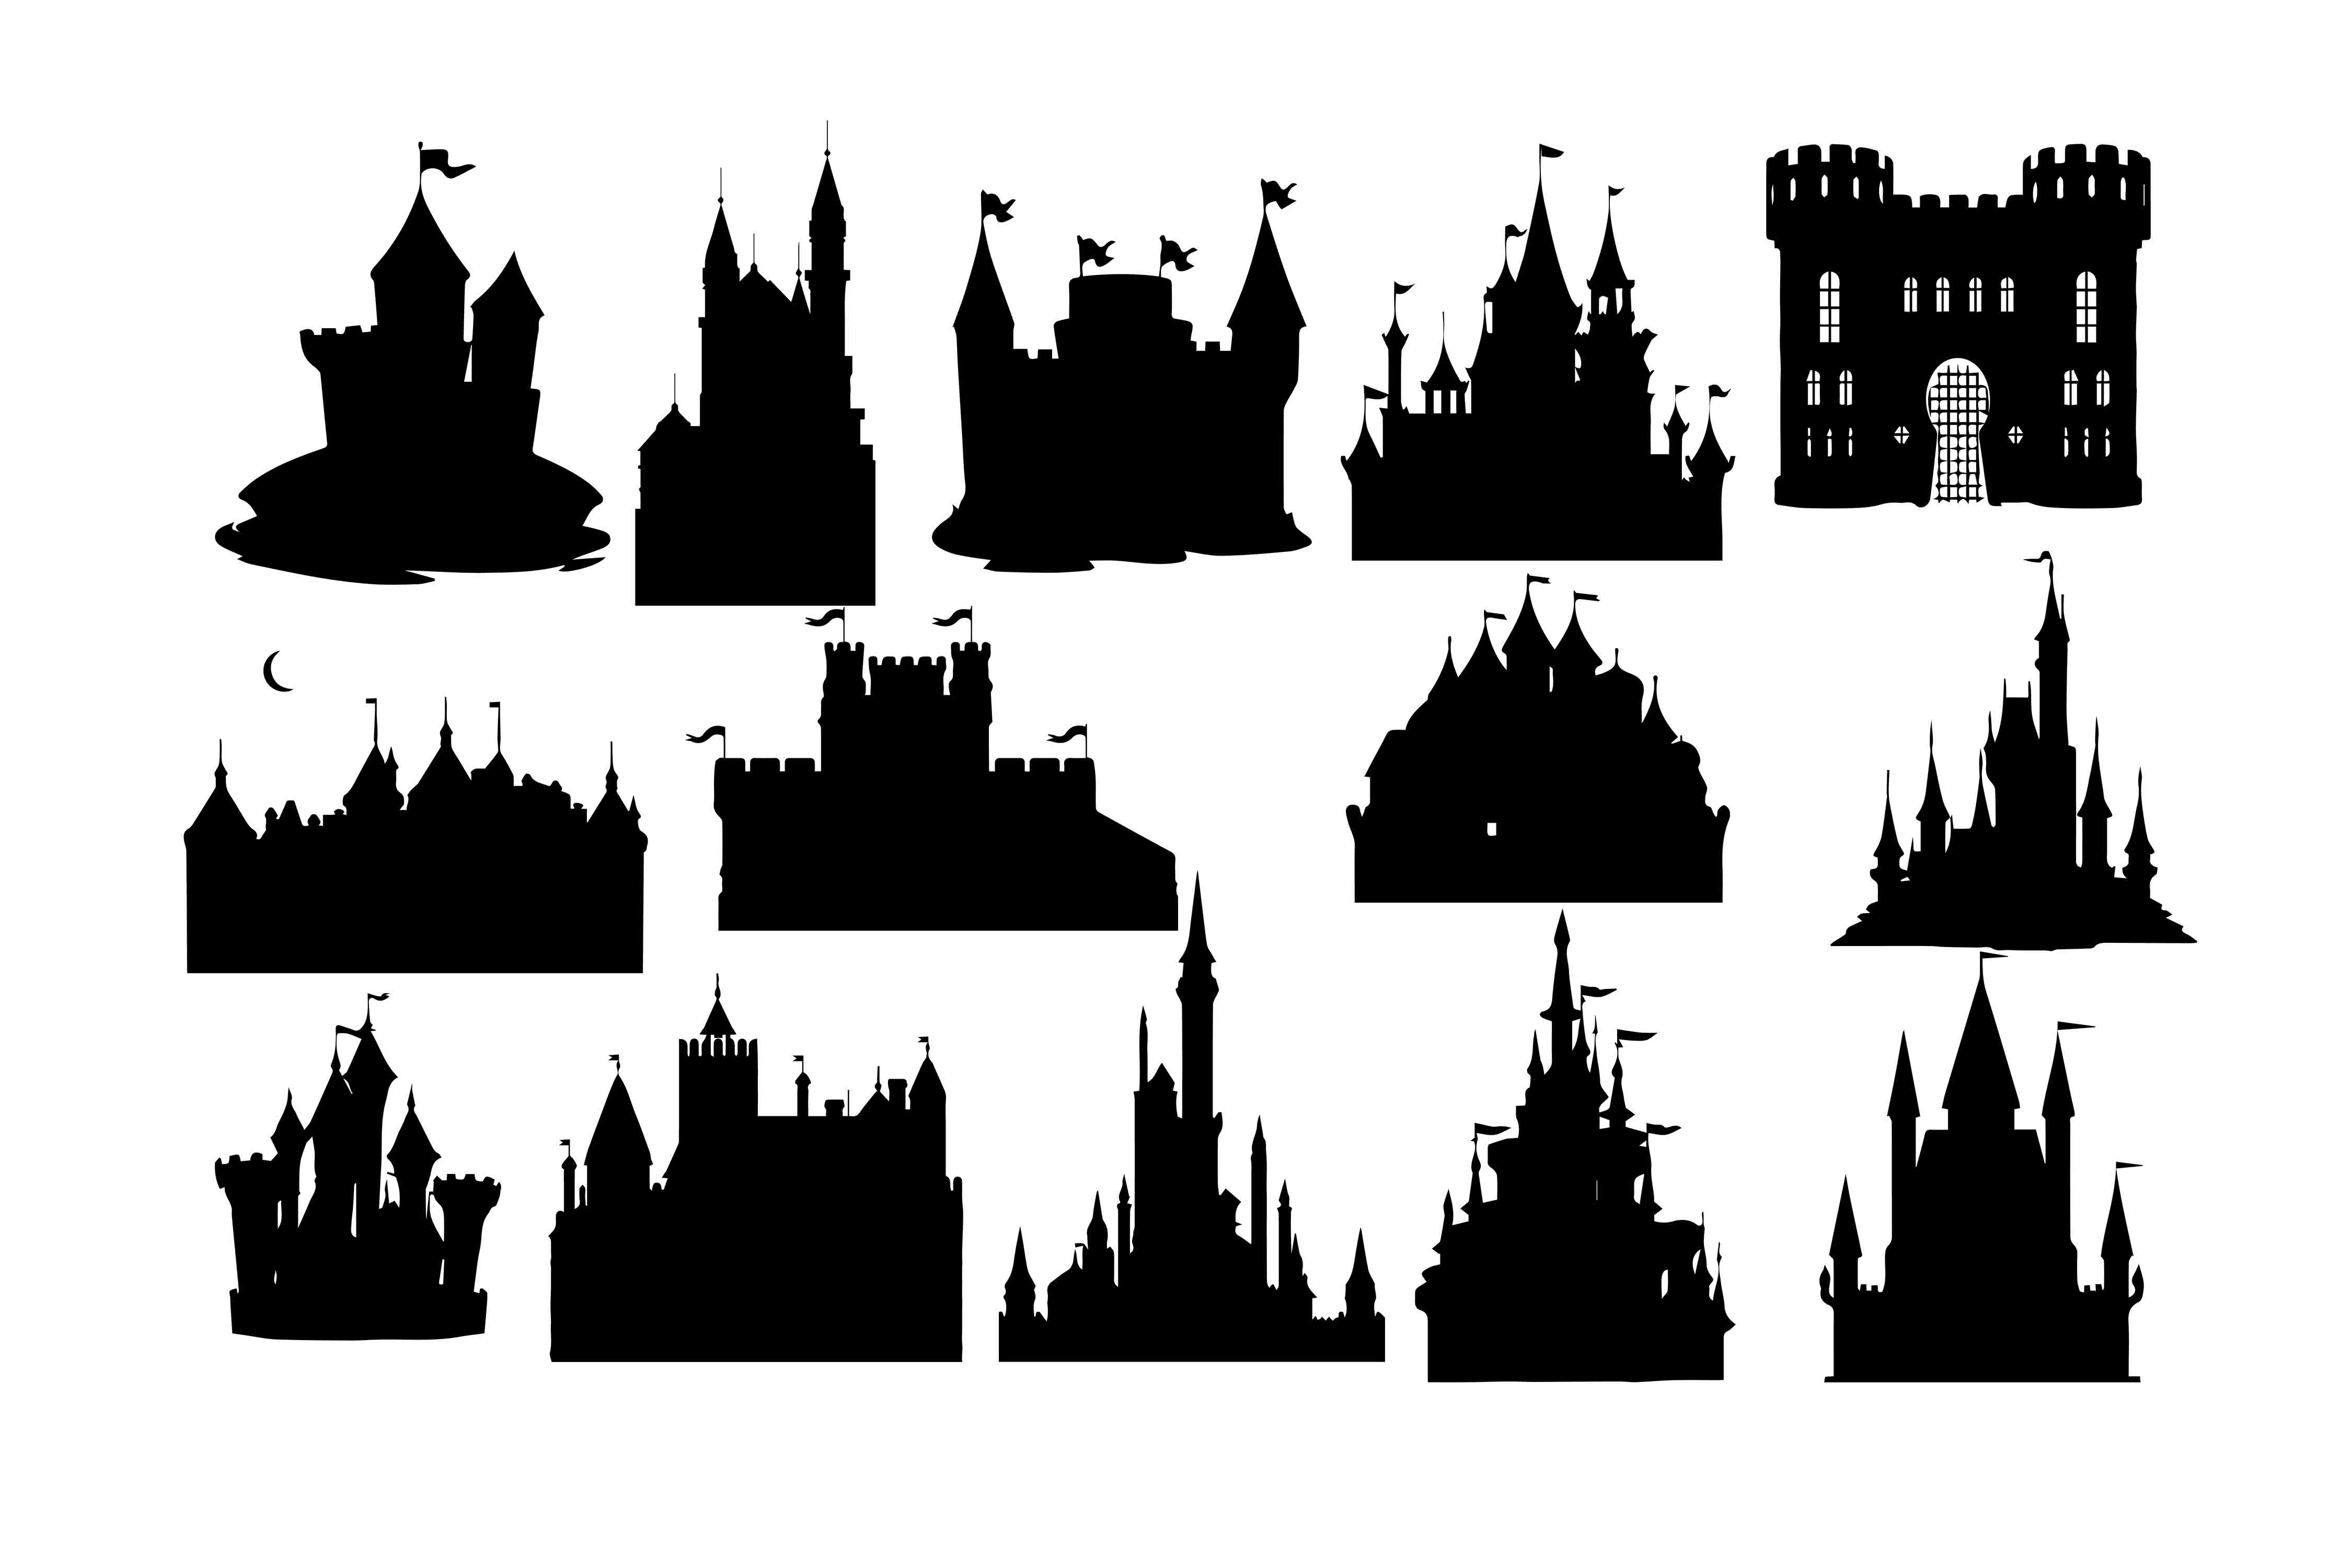 Download Free Castle Silhouette Graphic By Retrowalldecor Creative Fabrica for Cricut Explore, Silhouette and other cutting machines.